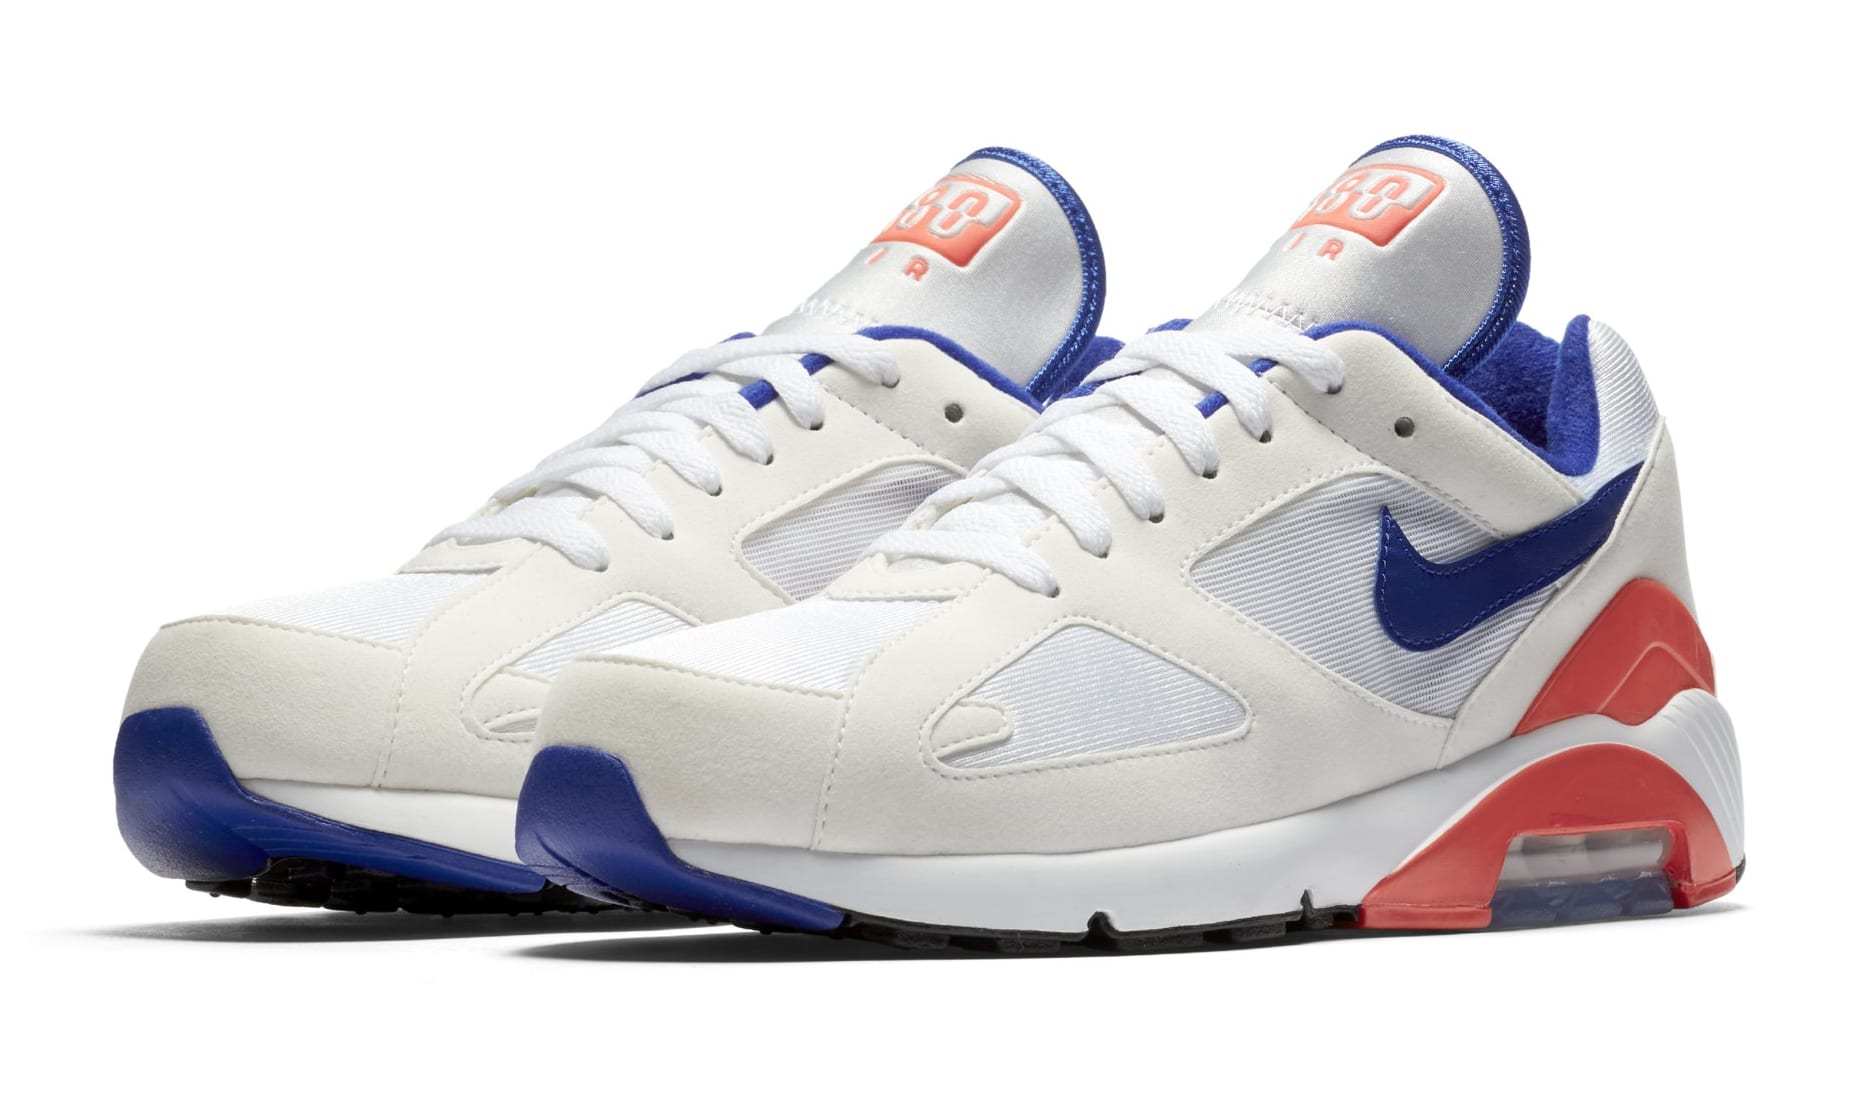 new style b151f db411 ... shopping the air max 180 returns next week. in the og ultramarine  colorway. e7dfa